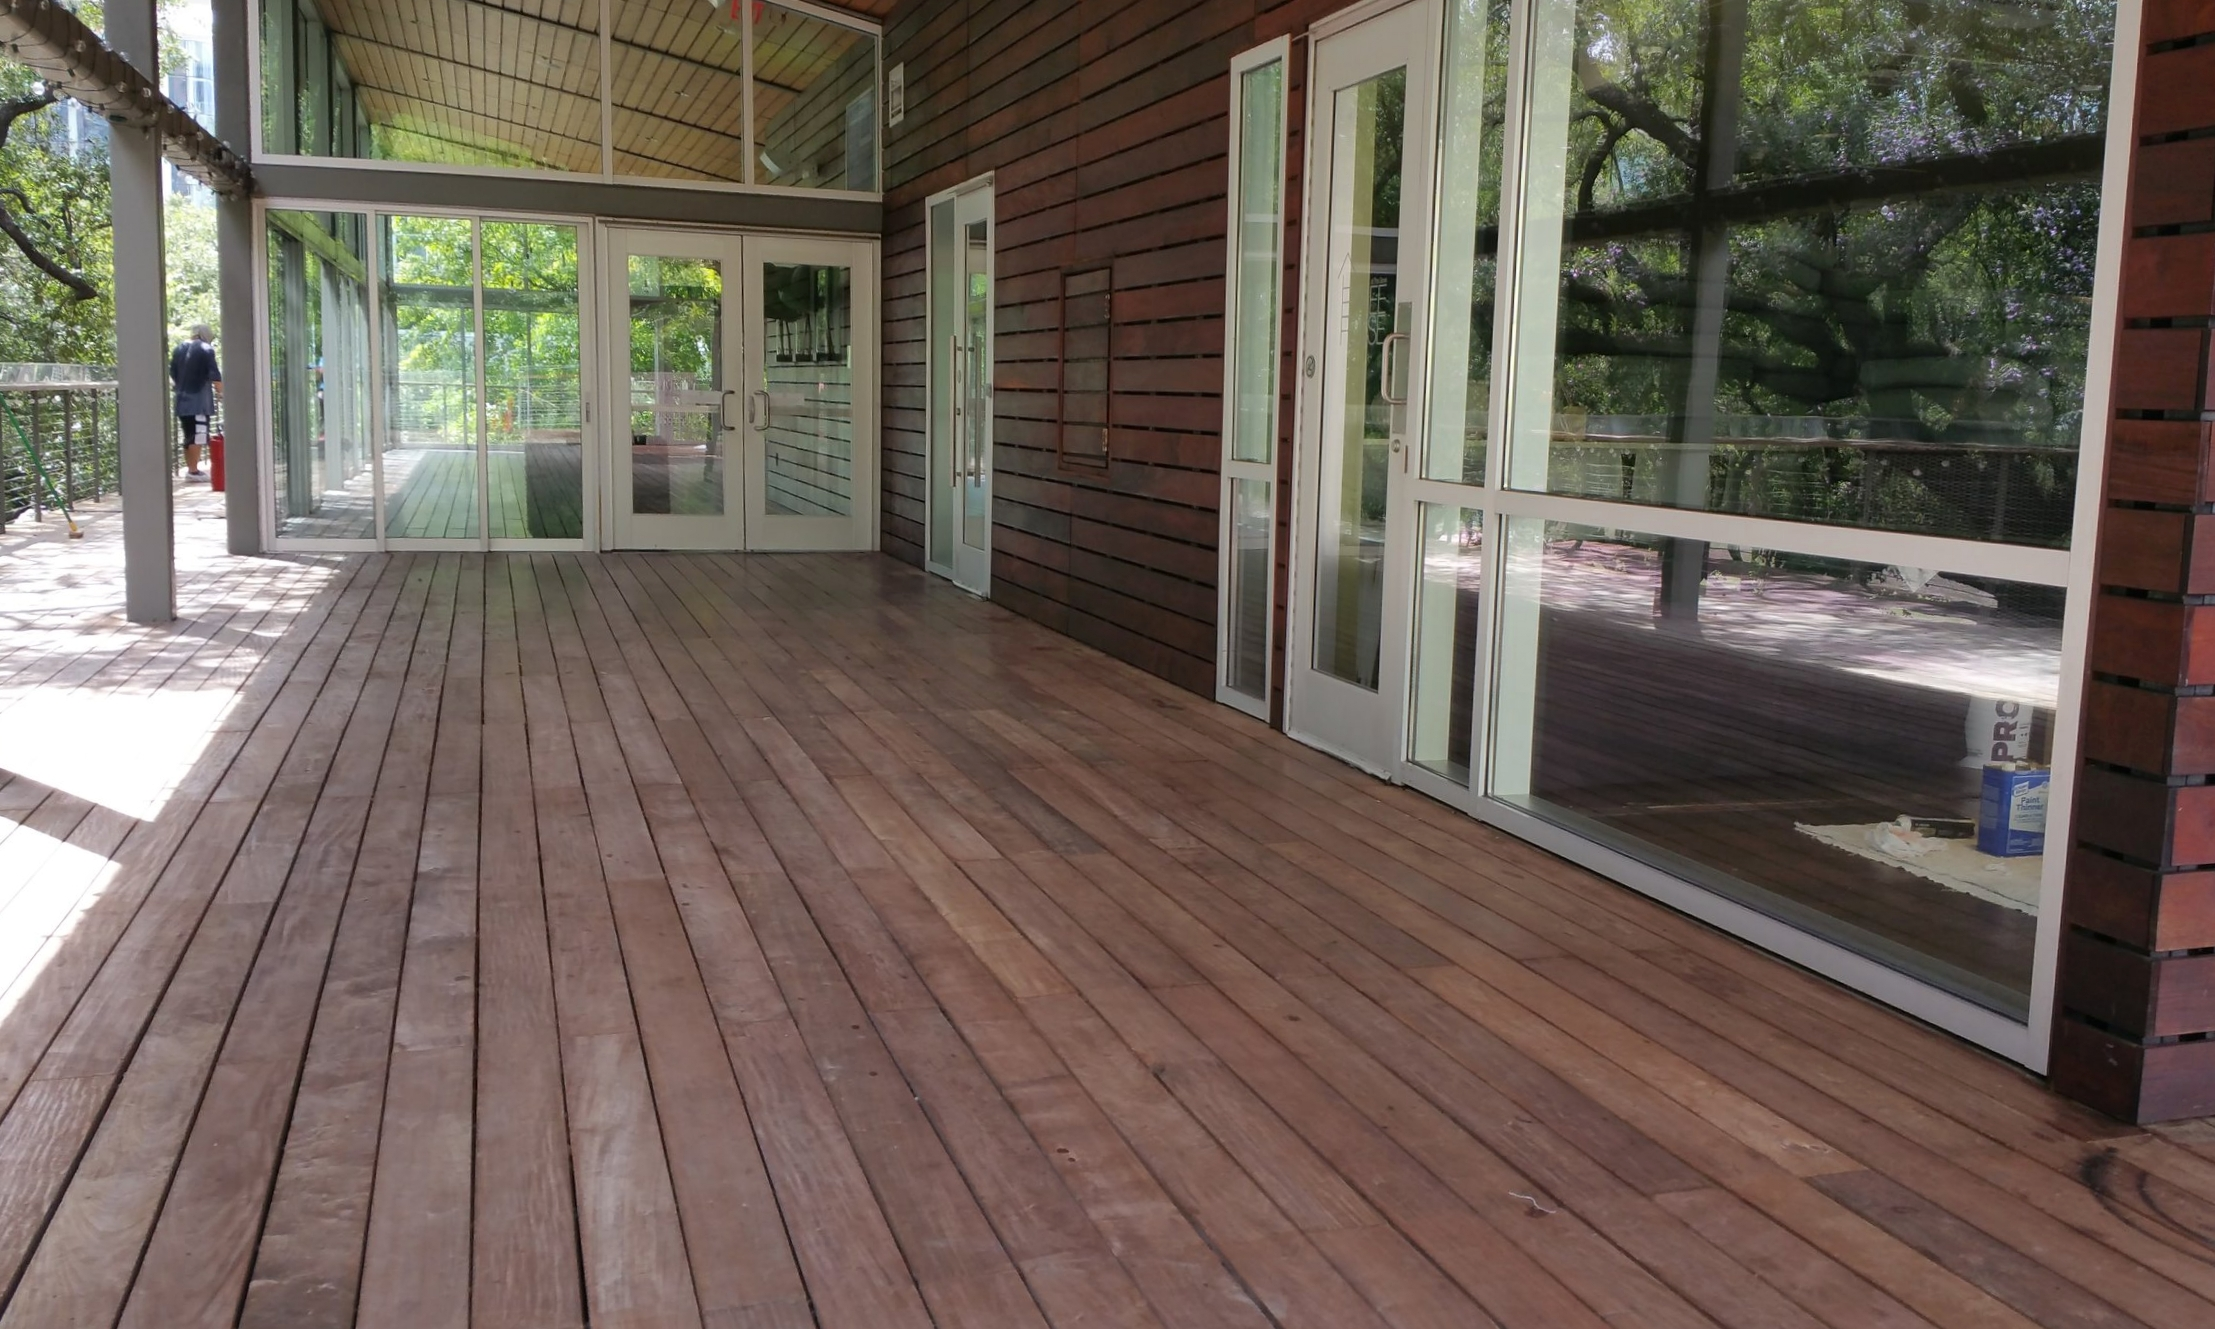 After pressure-washing the deck